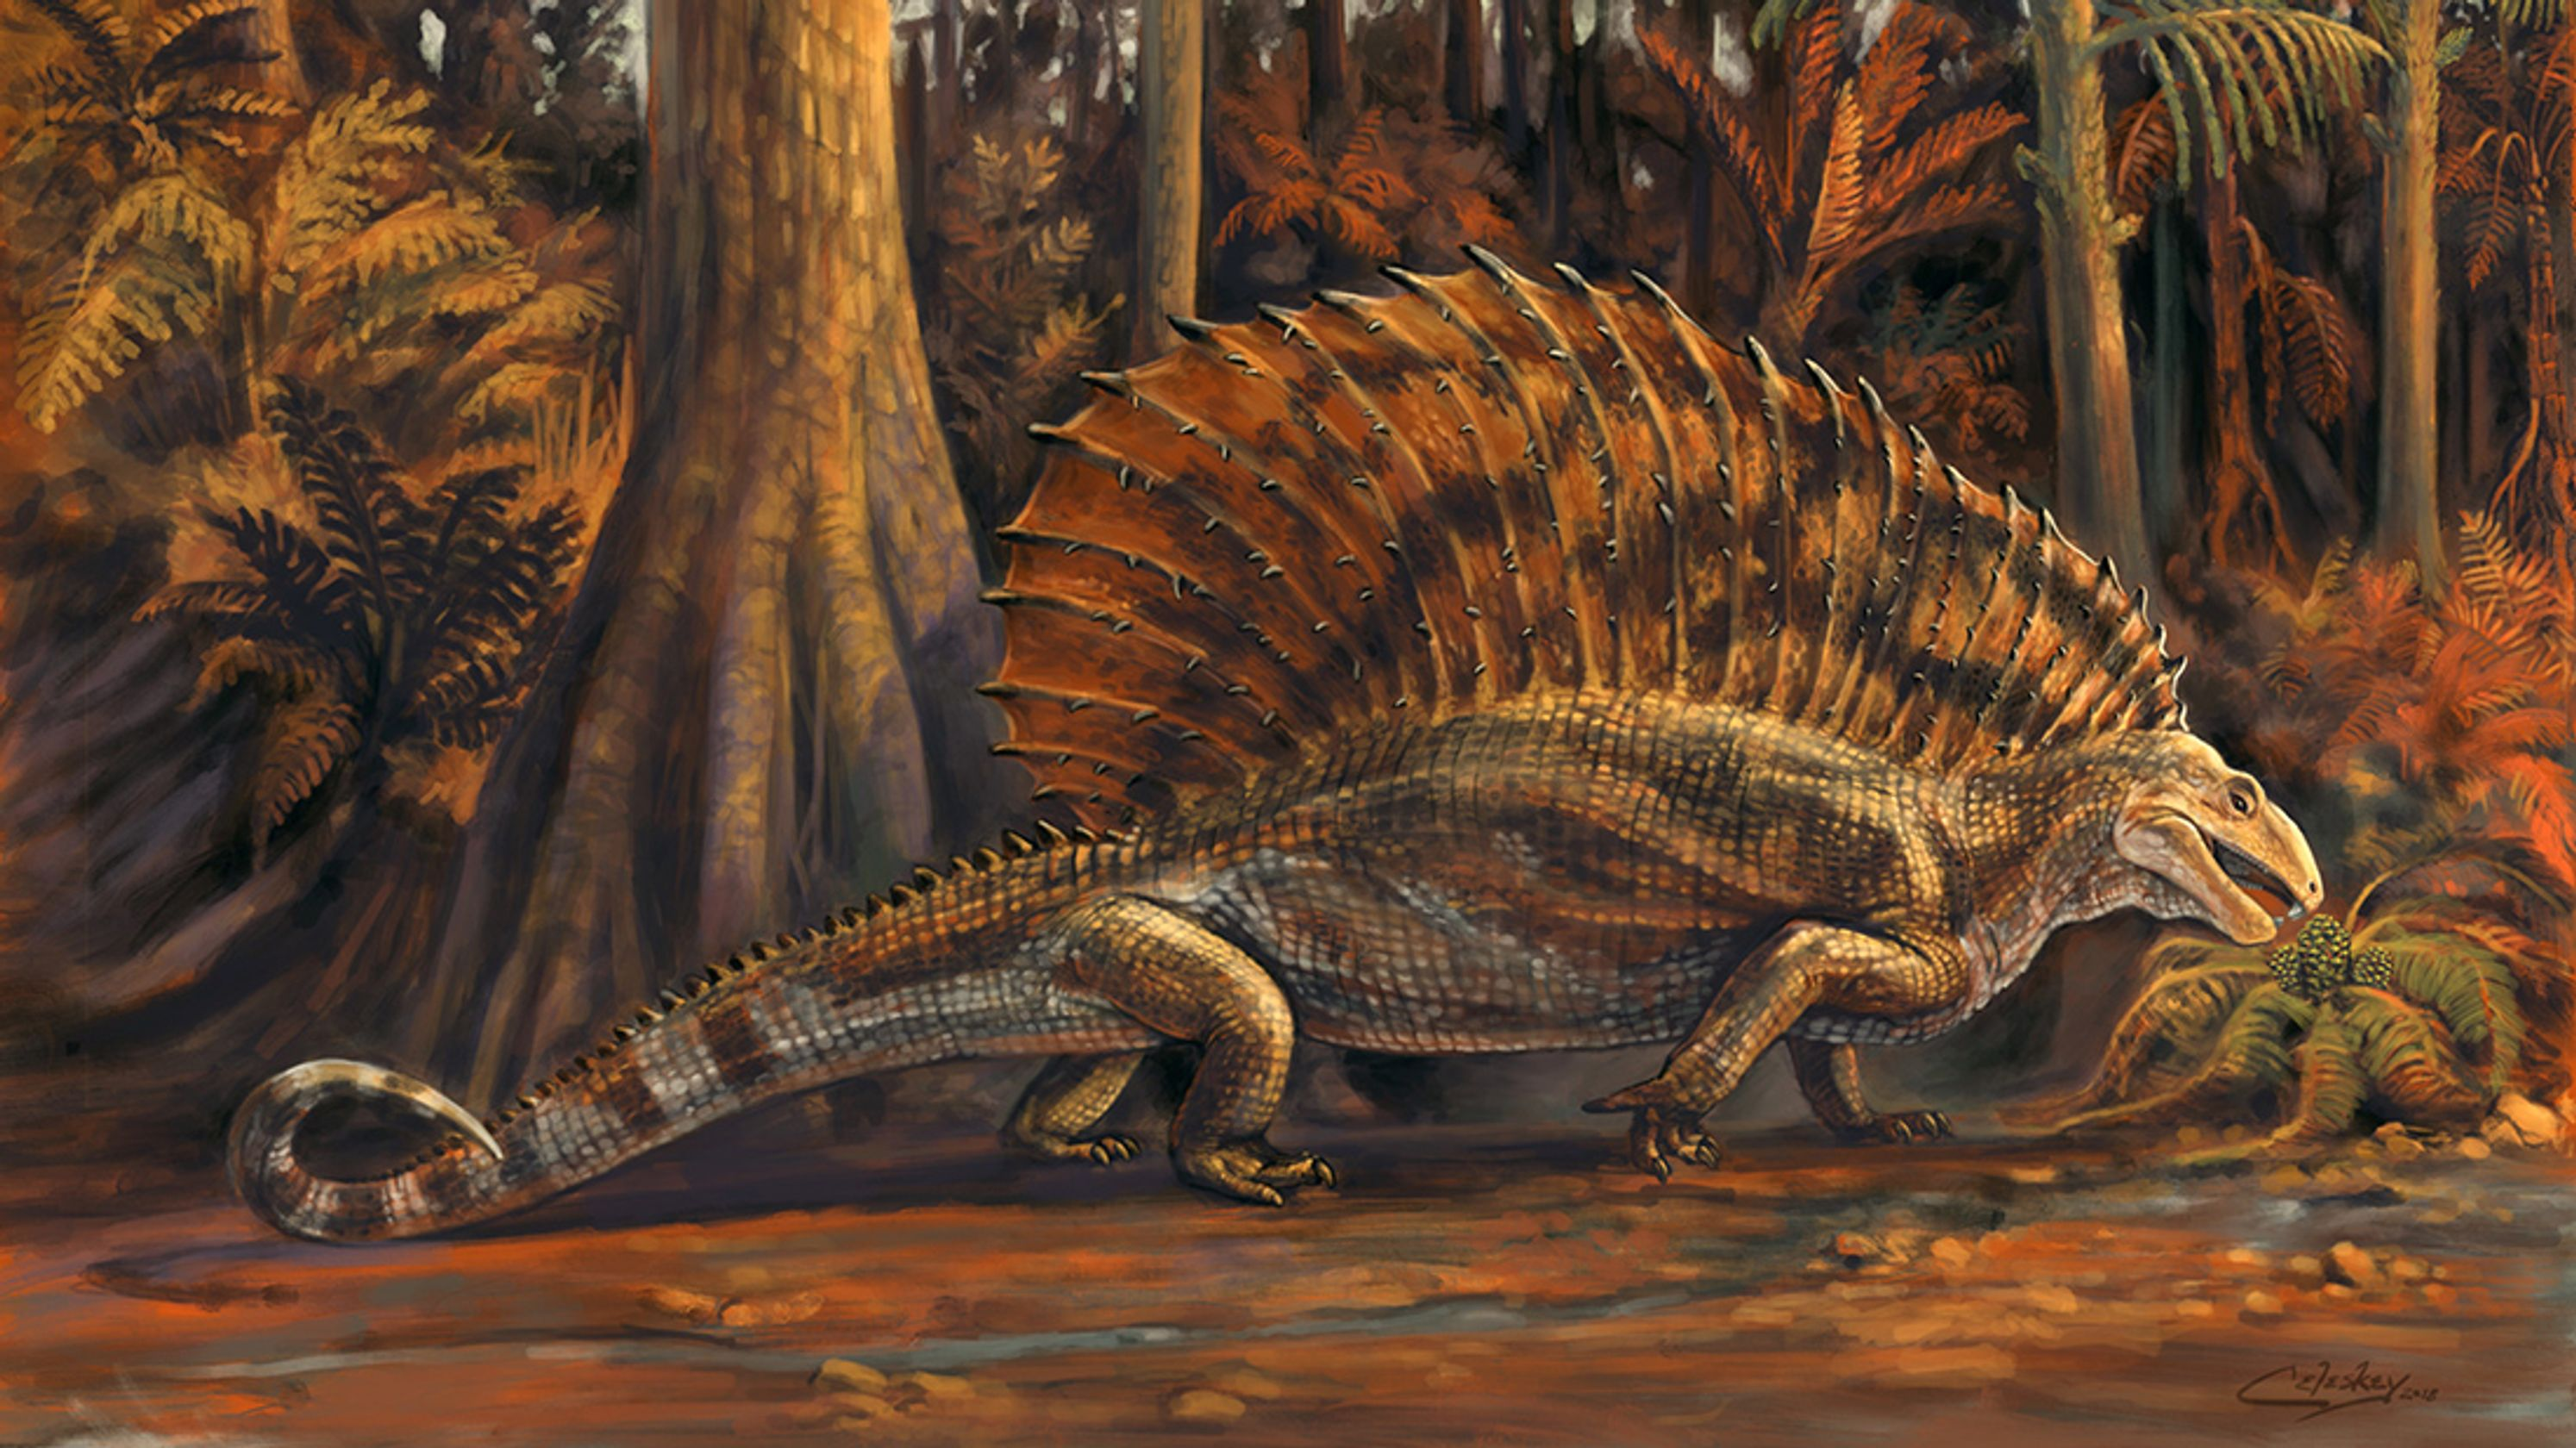 This artist's rendition of Gordodon depicts what the plant-eating reptile may have looked like in its natural habitat about 300 million years ago. The fossilized remains were discovered near Alamogordo in 2013. (Courtesy of Matt Celeskey, NMDCA)